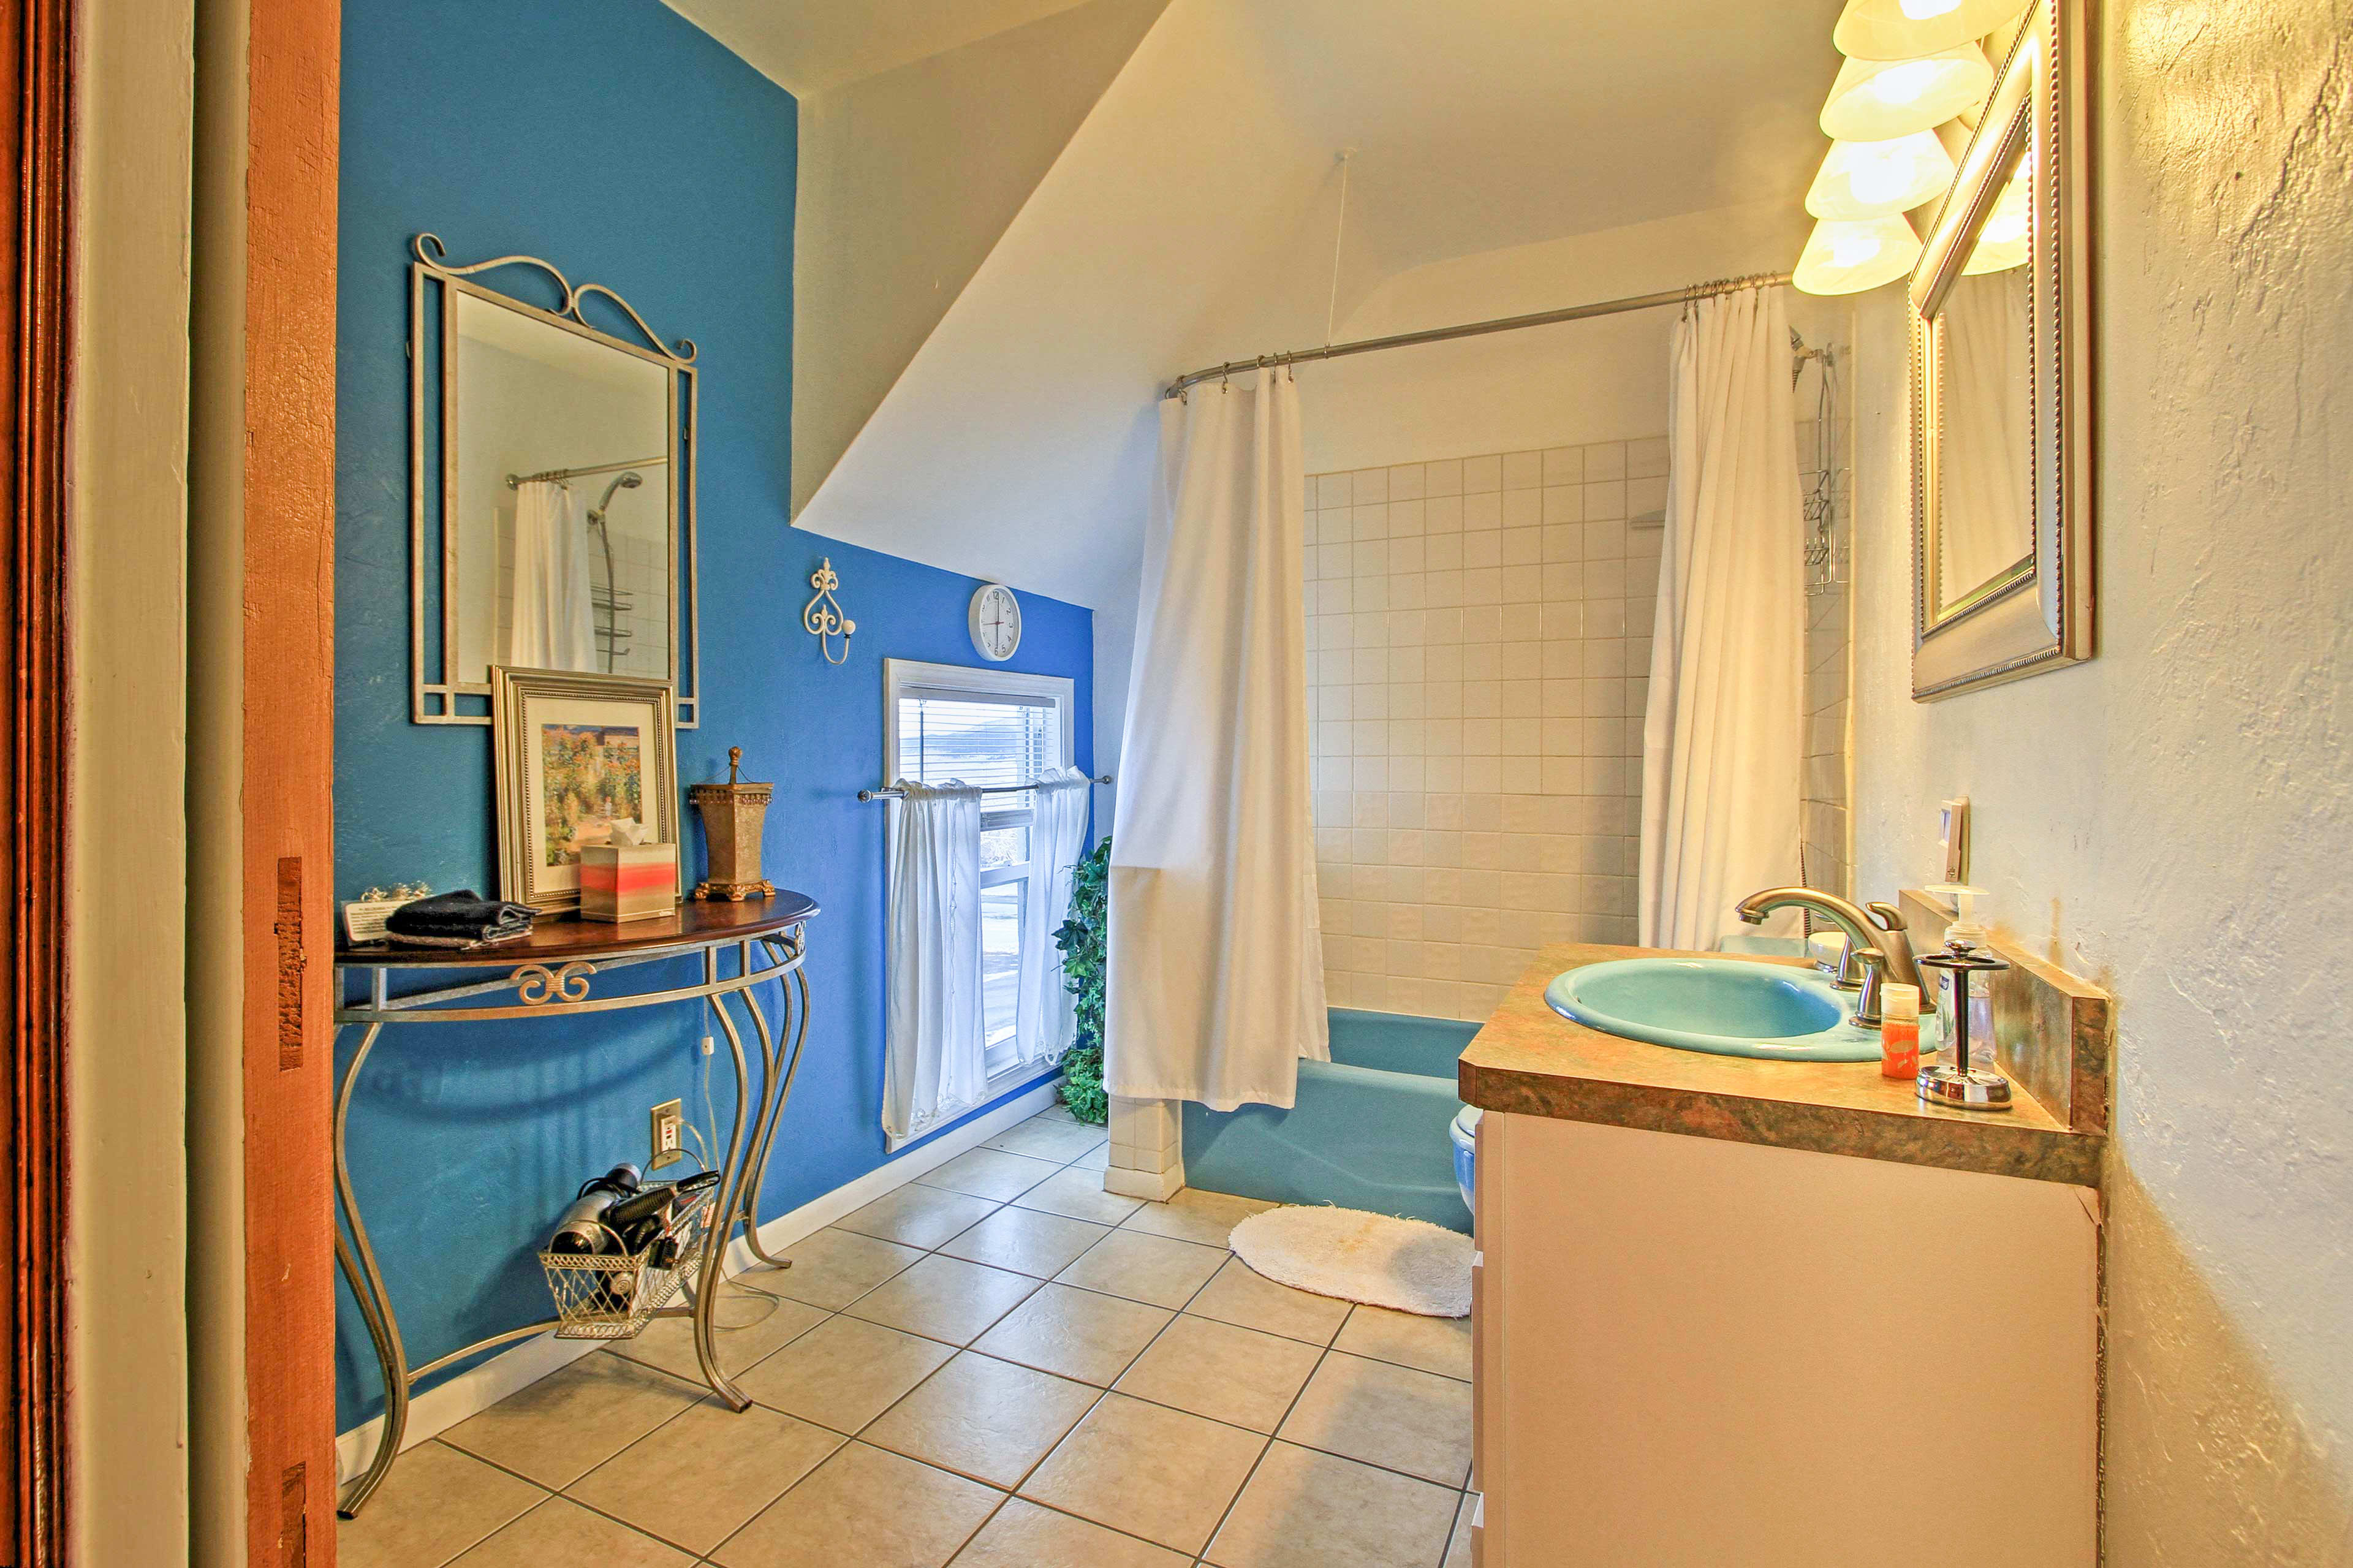 After a day on the trails, wash the dust off in this bathroom's shower/tub combo.